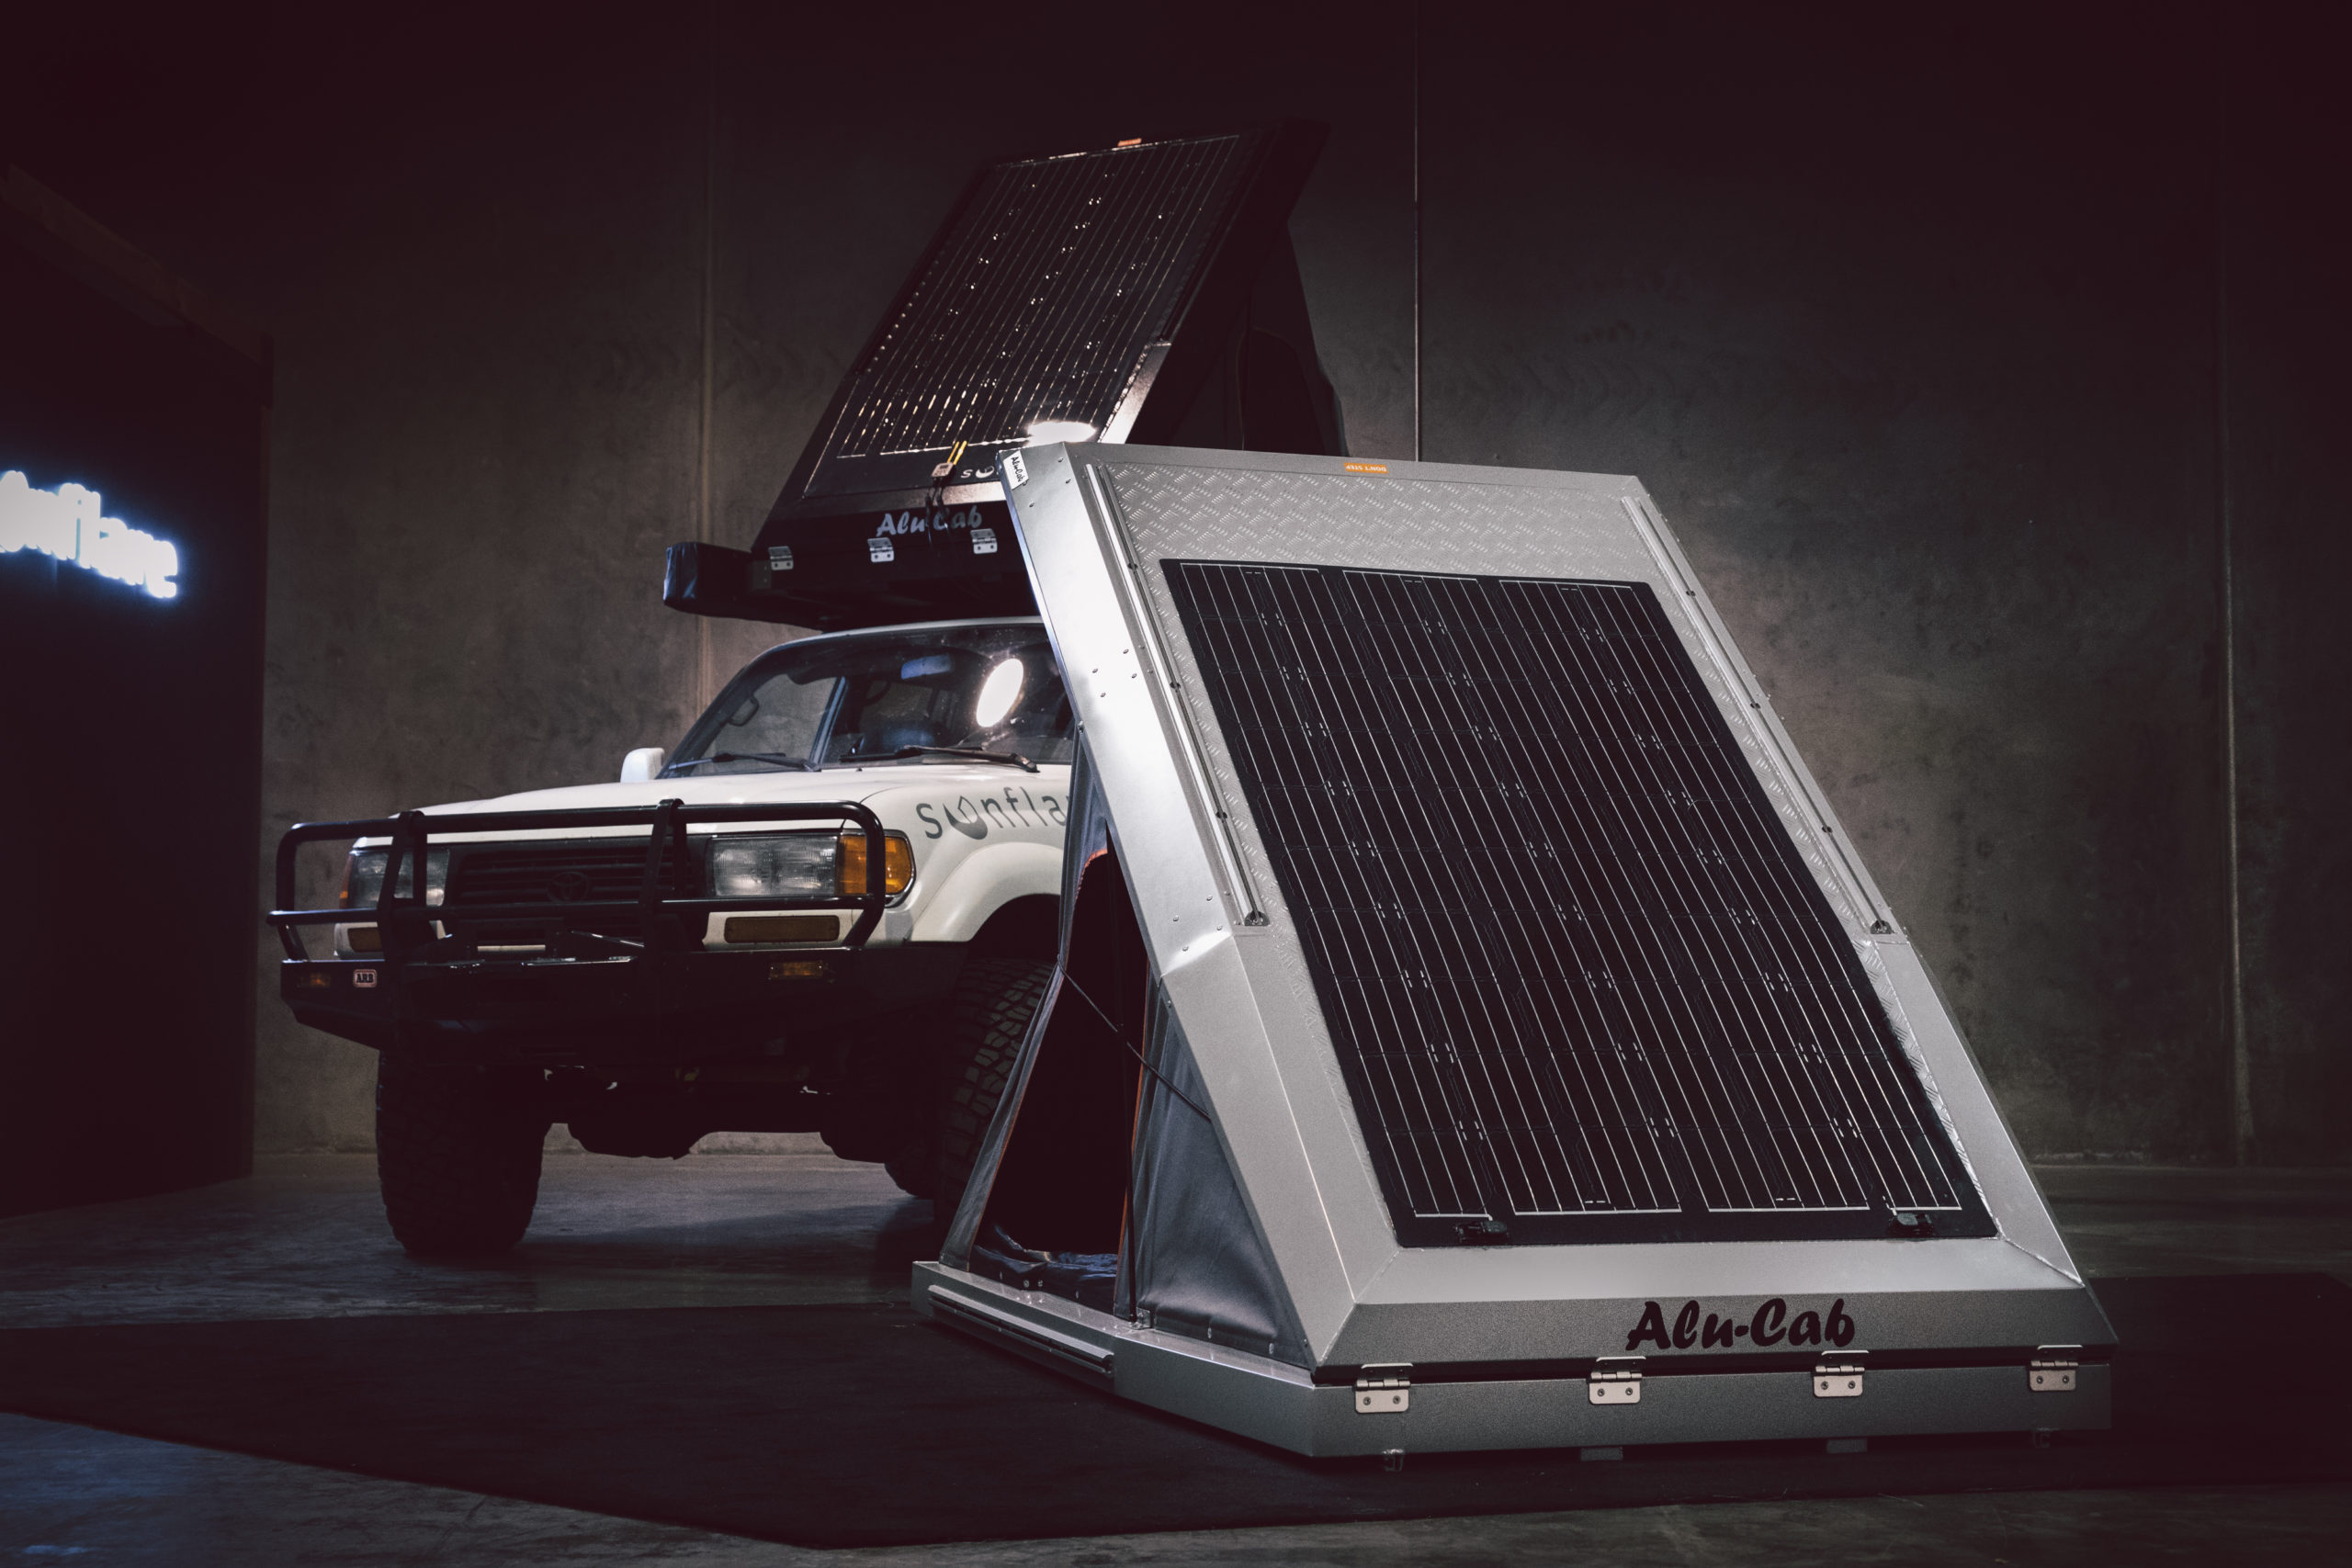 Sunflare's overland solar panels are now offered by New Jersey-based OK4WD, a shop offering off-road, 4x4, and performance truck